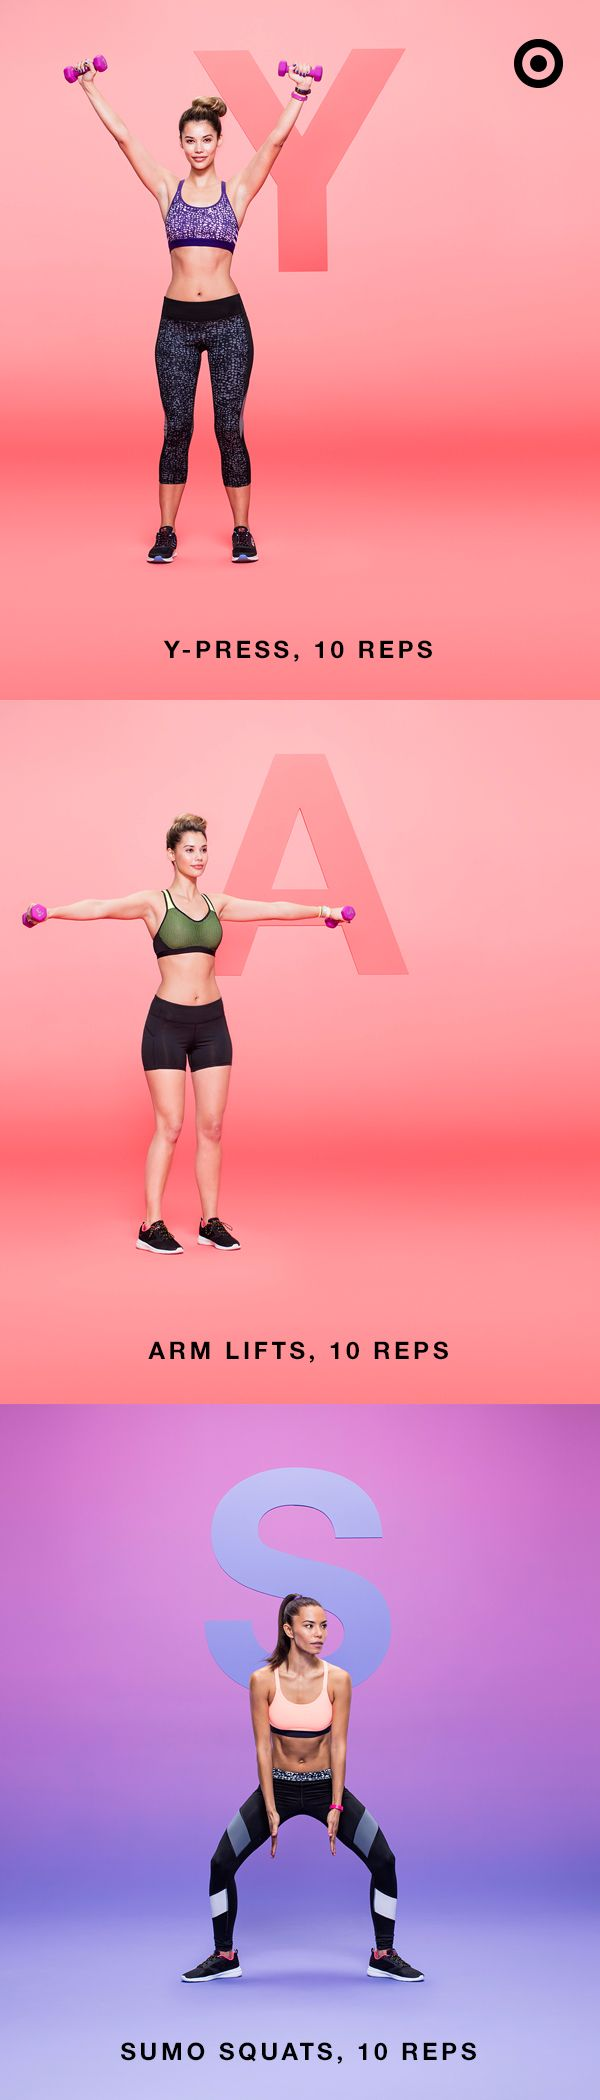 "You know what they say: No days off. So here's a full body workout you can do anywhere—especially when you're sporting an all-new C9 Champion® Power Core® or Power Shape™ sports bra. With an all-new range of colors, patterns and textures, it's athletic gear perfect for every workout move there is—from A to Z. Complete 3 sets of this workout for particularly ""YAS"" results."